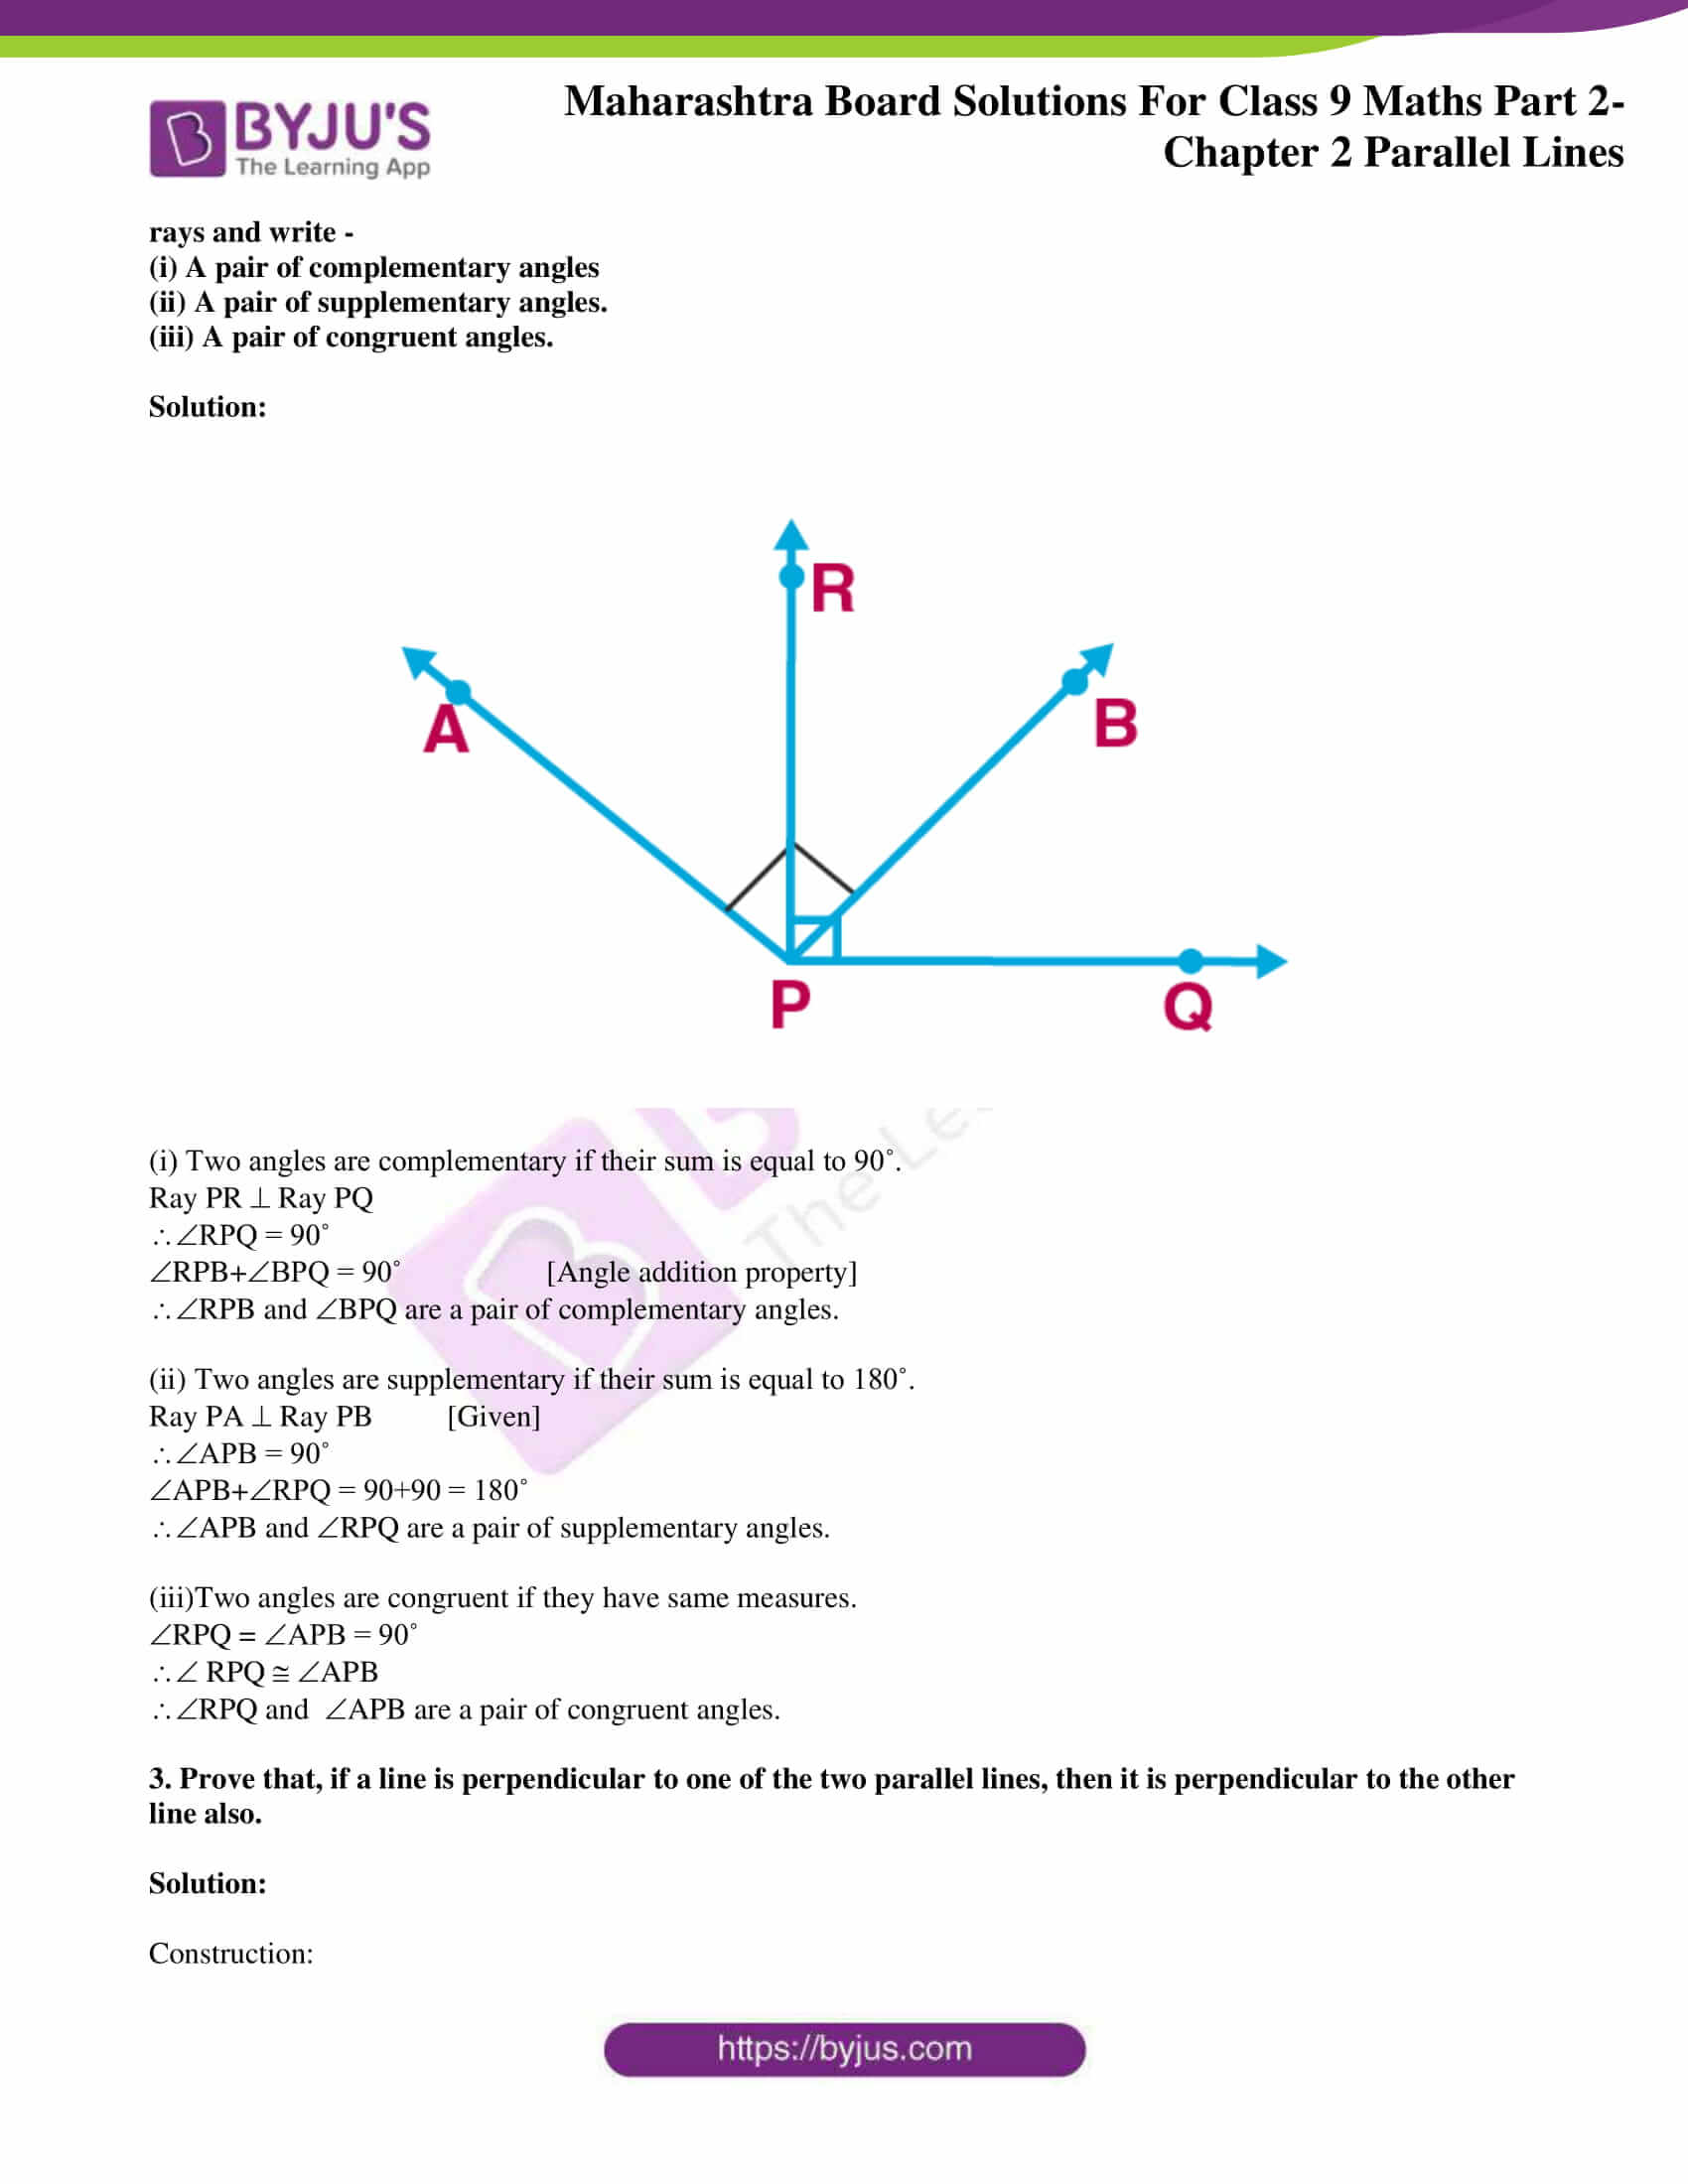 msbshse solutions for class 9 maths part 2 chapter 2 13